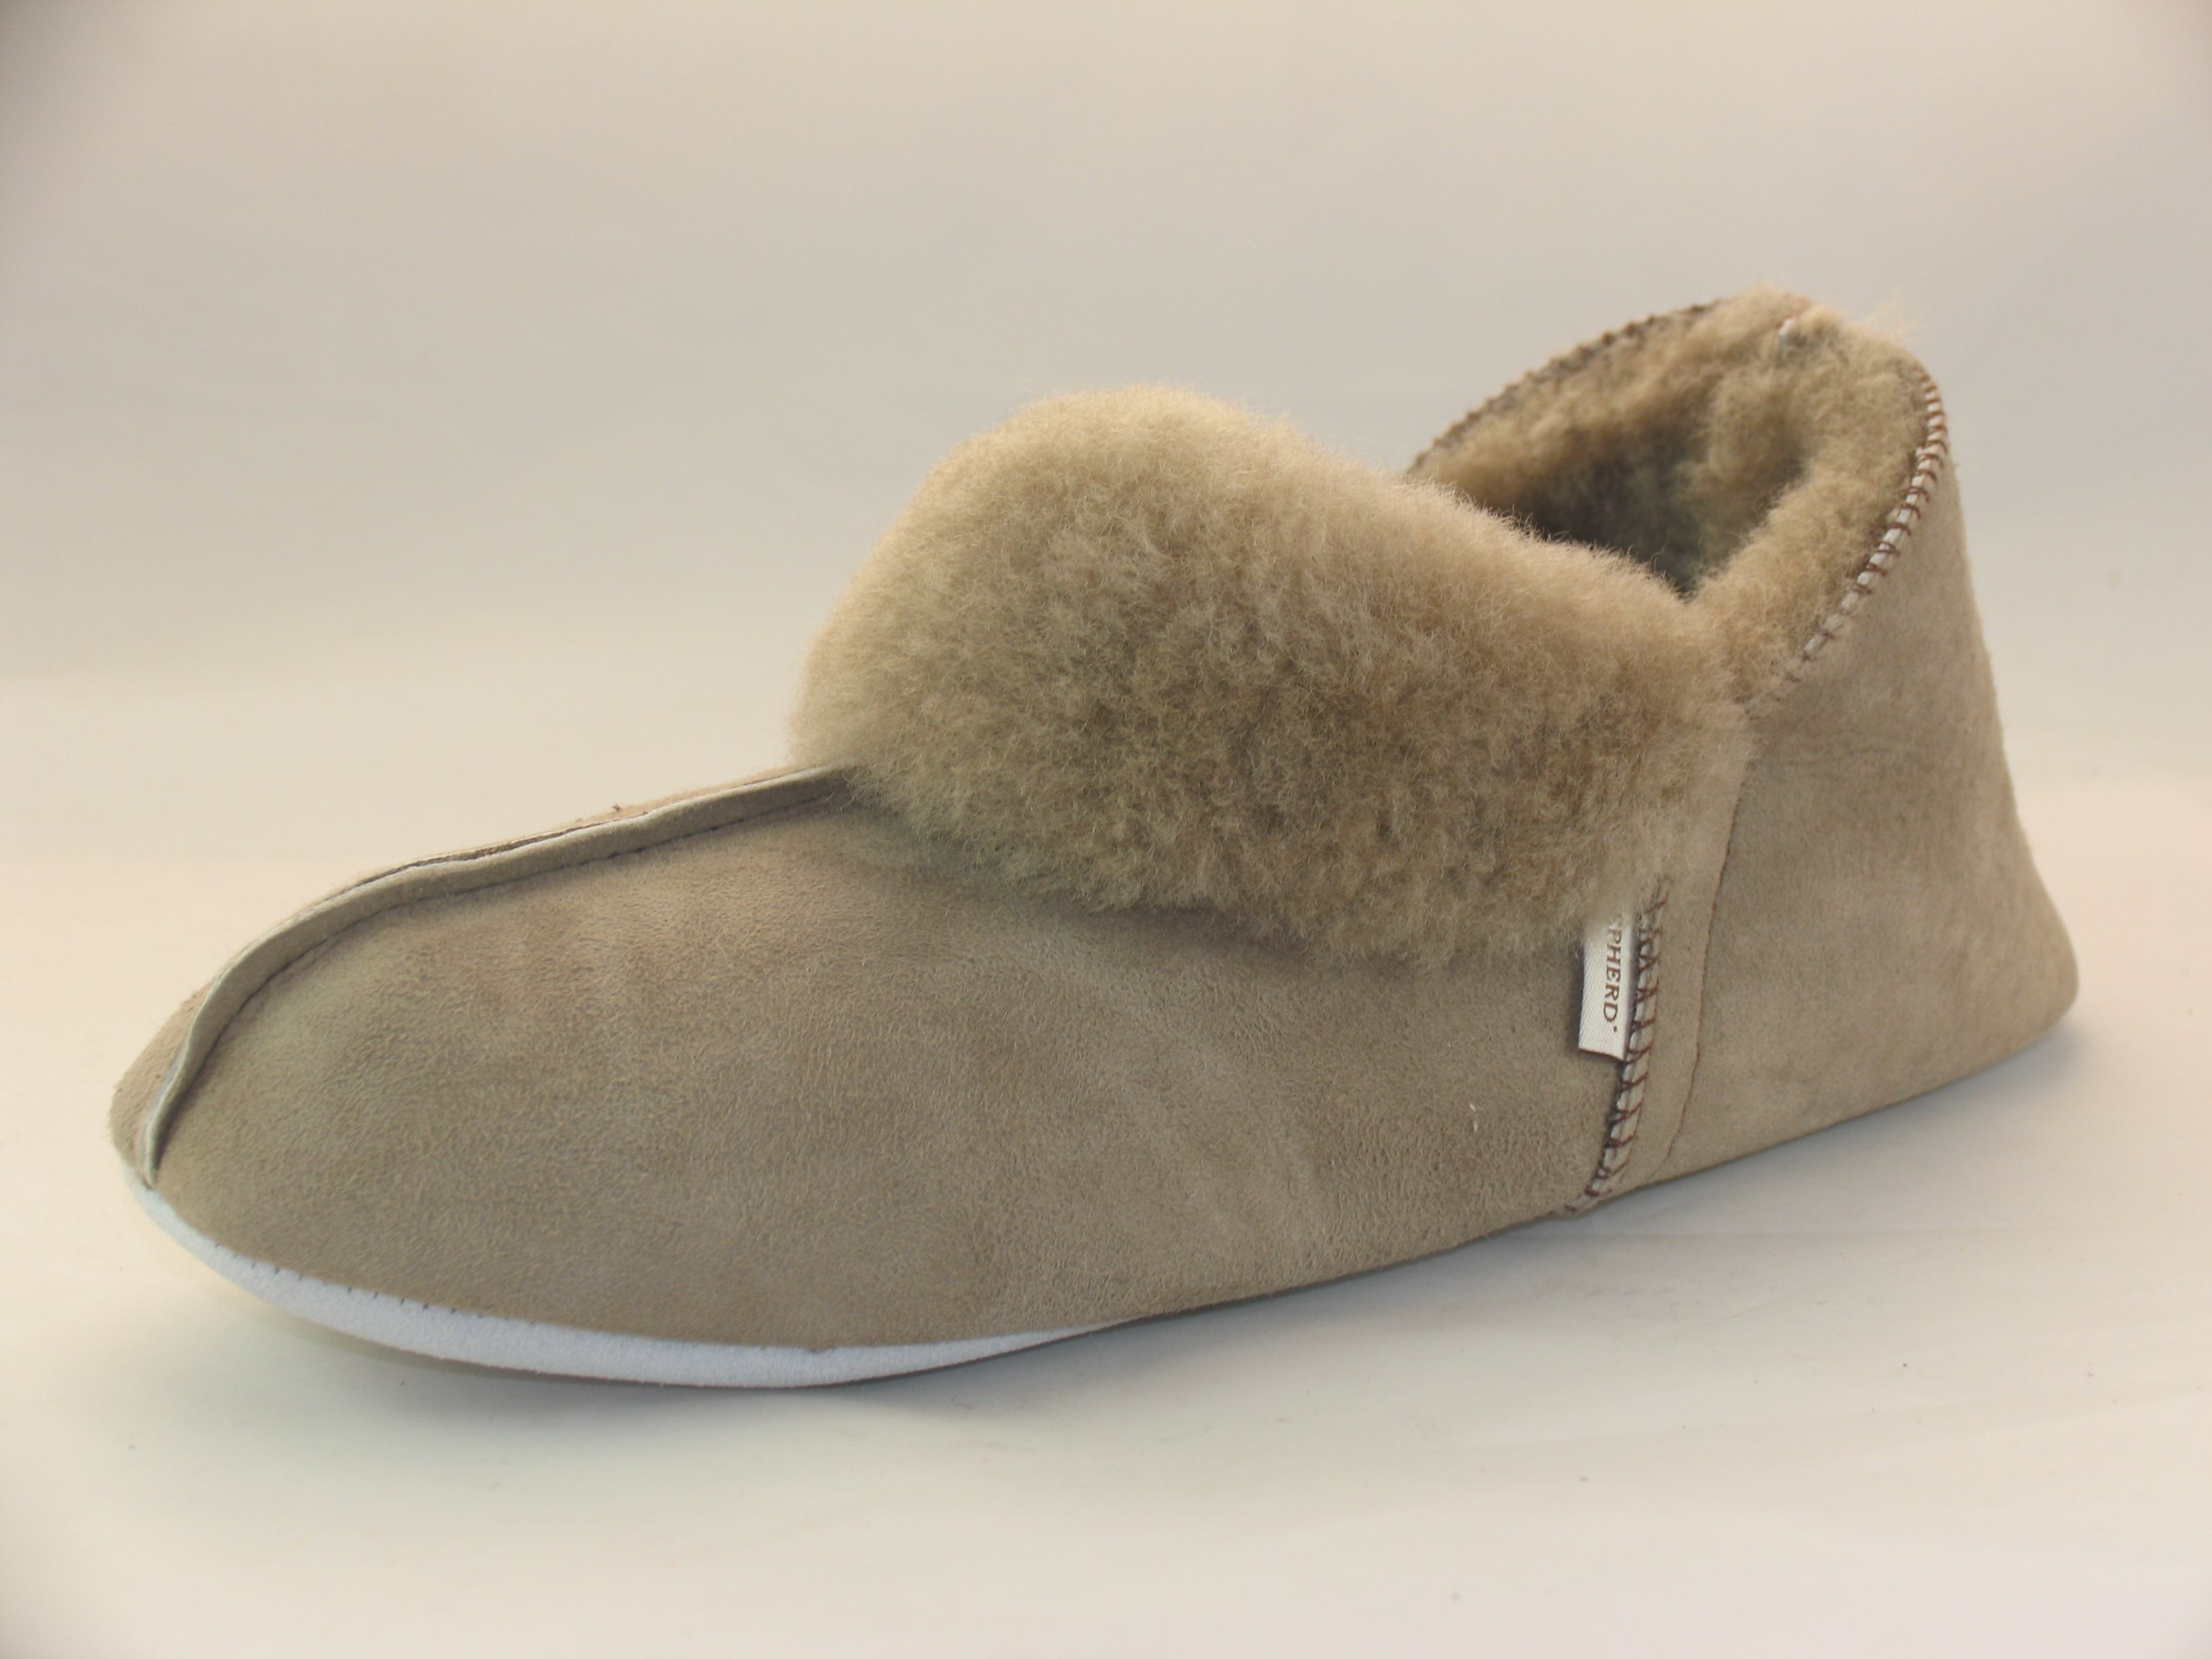 ceac21a45 Details about Womens Shepherd Nina Full Sheepskin Slippers